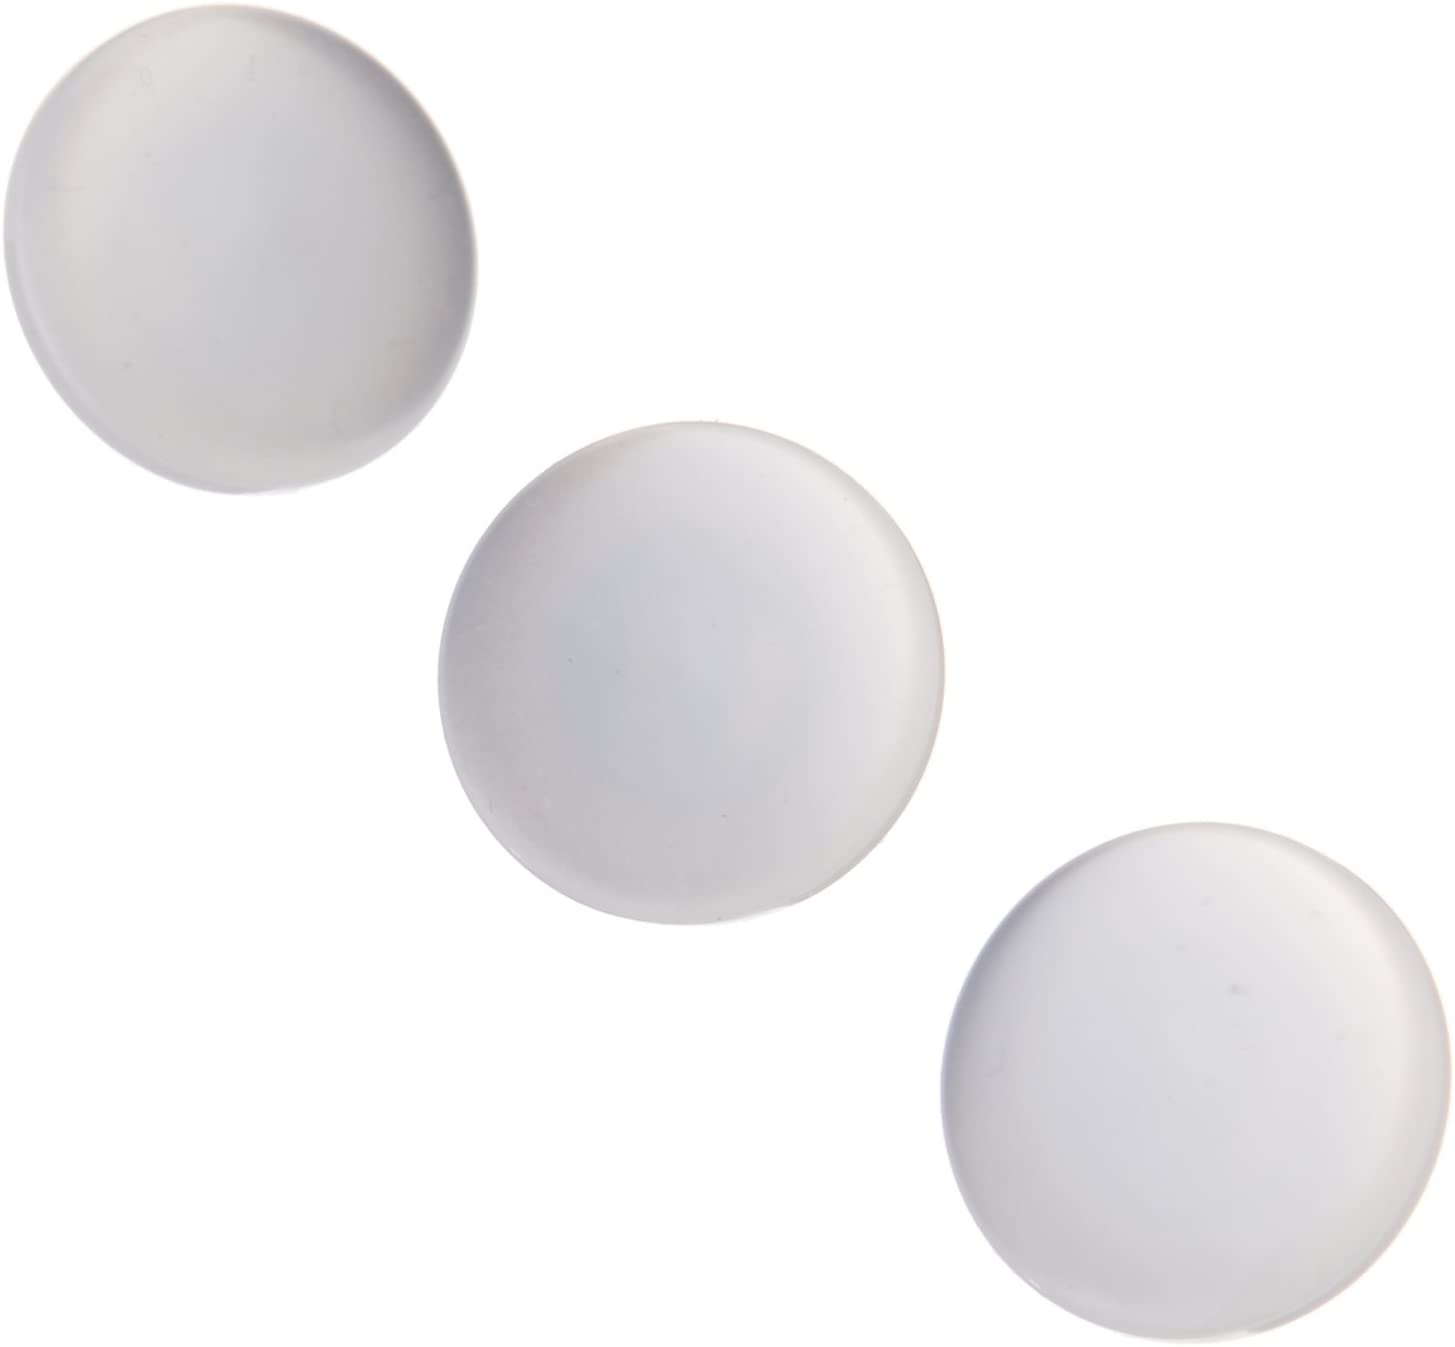 6 Per Card White 12mm Buttons Sewing Craft Knitting 4 holes